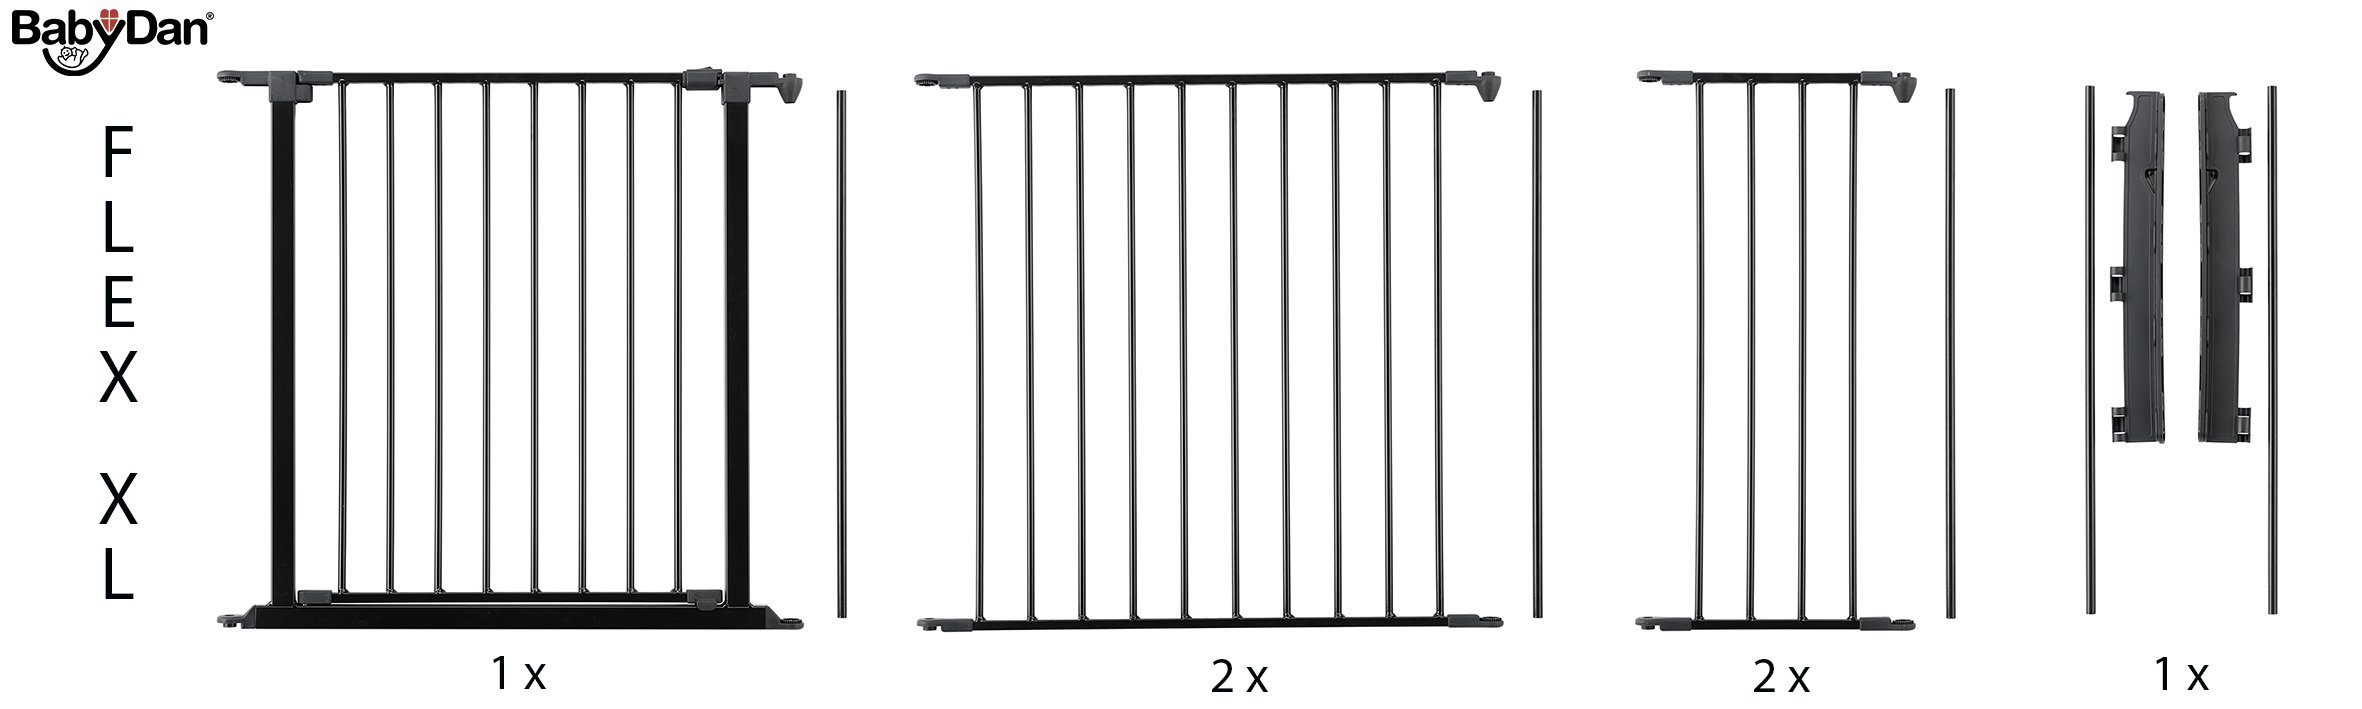 BabyDan Configure (Large 90-223cm, Anthracite) BabyDan Only configure system fulfilling newest european safety standard Multi purpose room divider and gate for wider openings Flexible and easy to fit 5